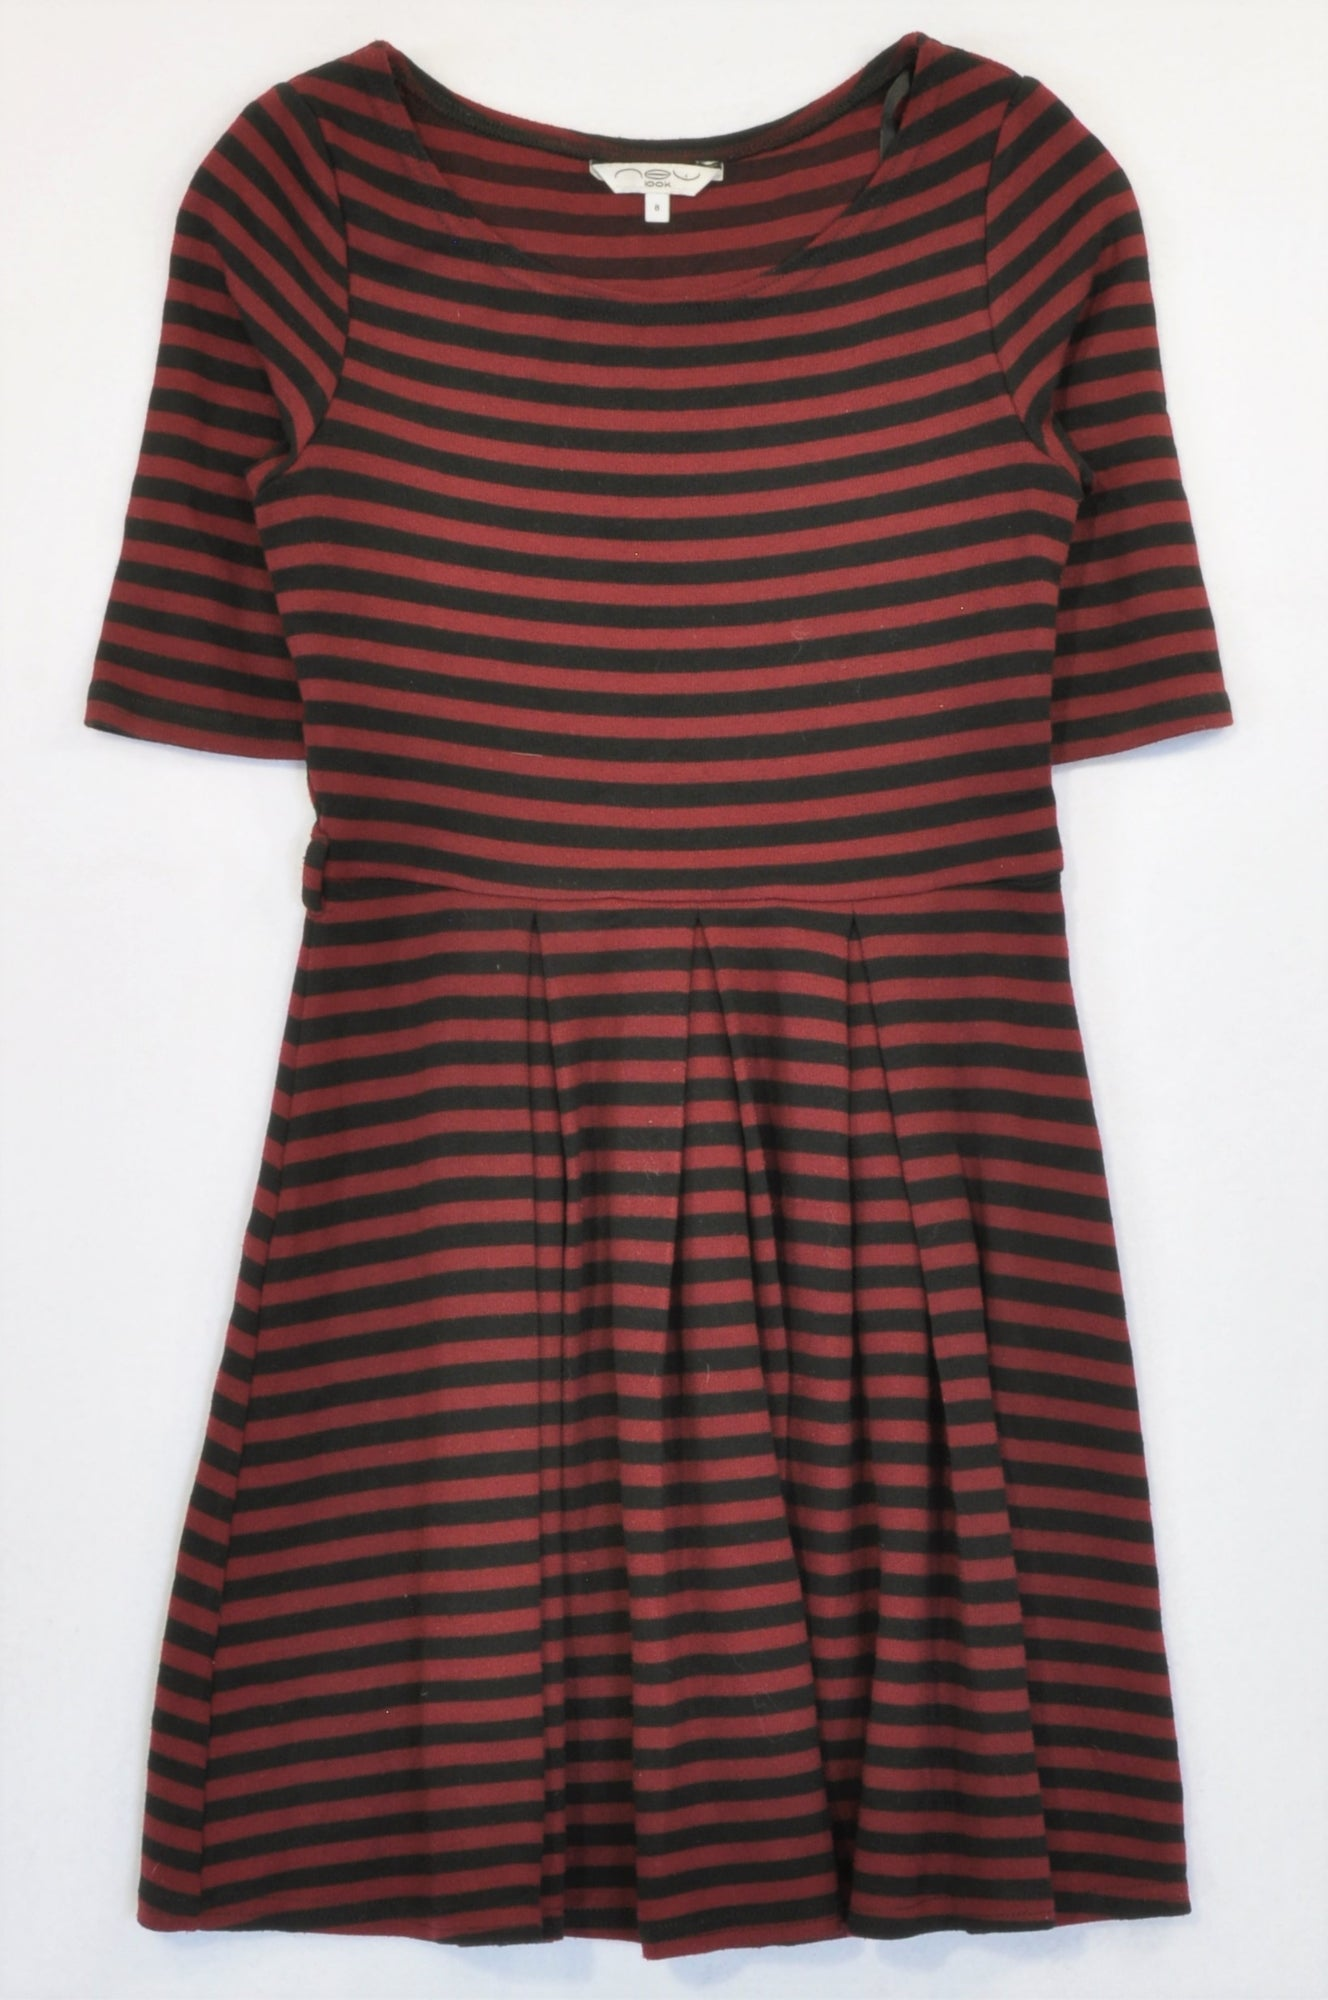 New Look Maroon & Black Stripe 3/4 Sleeve Flair Dress Women Size 8